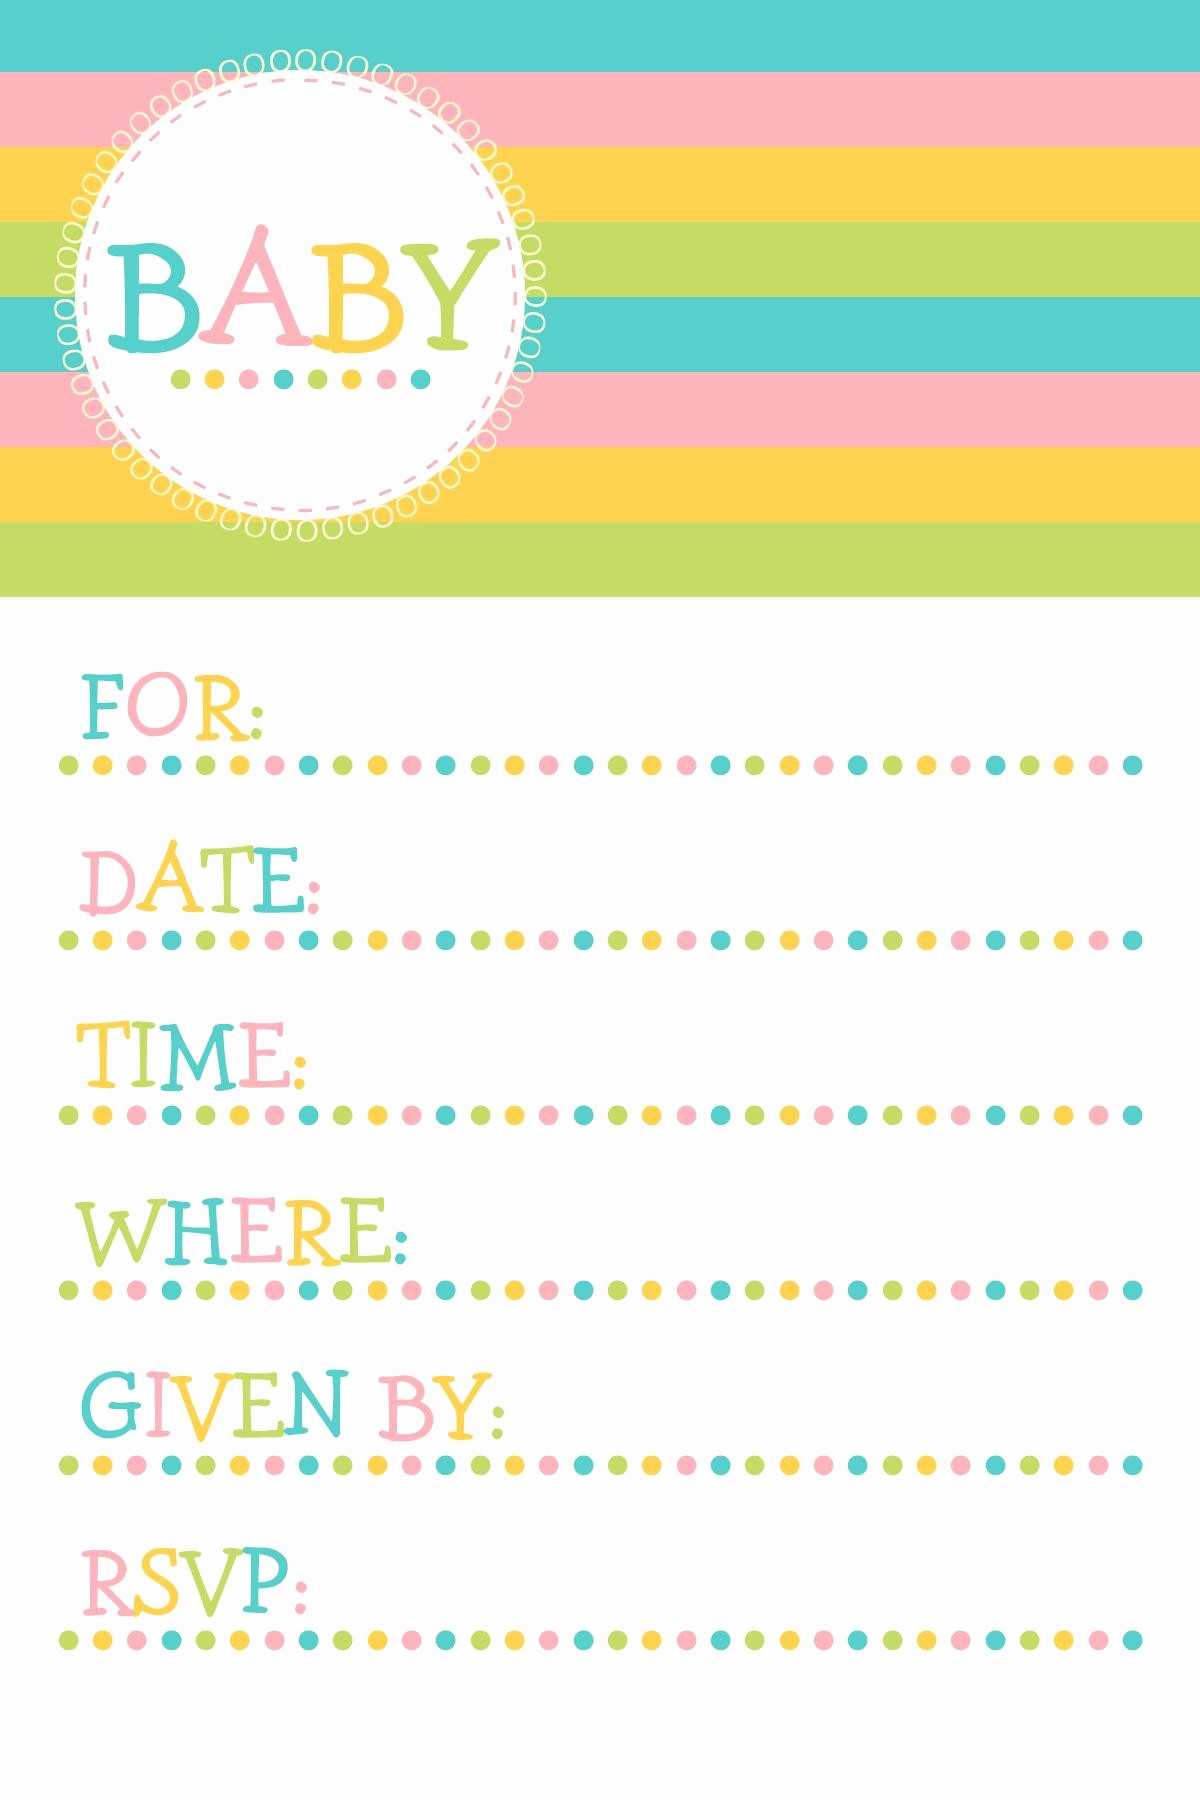 Free Printable Party Invitations Templates Elegant Free Printable Party Invitations Templates